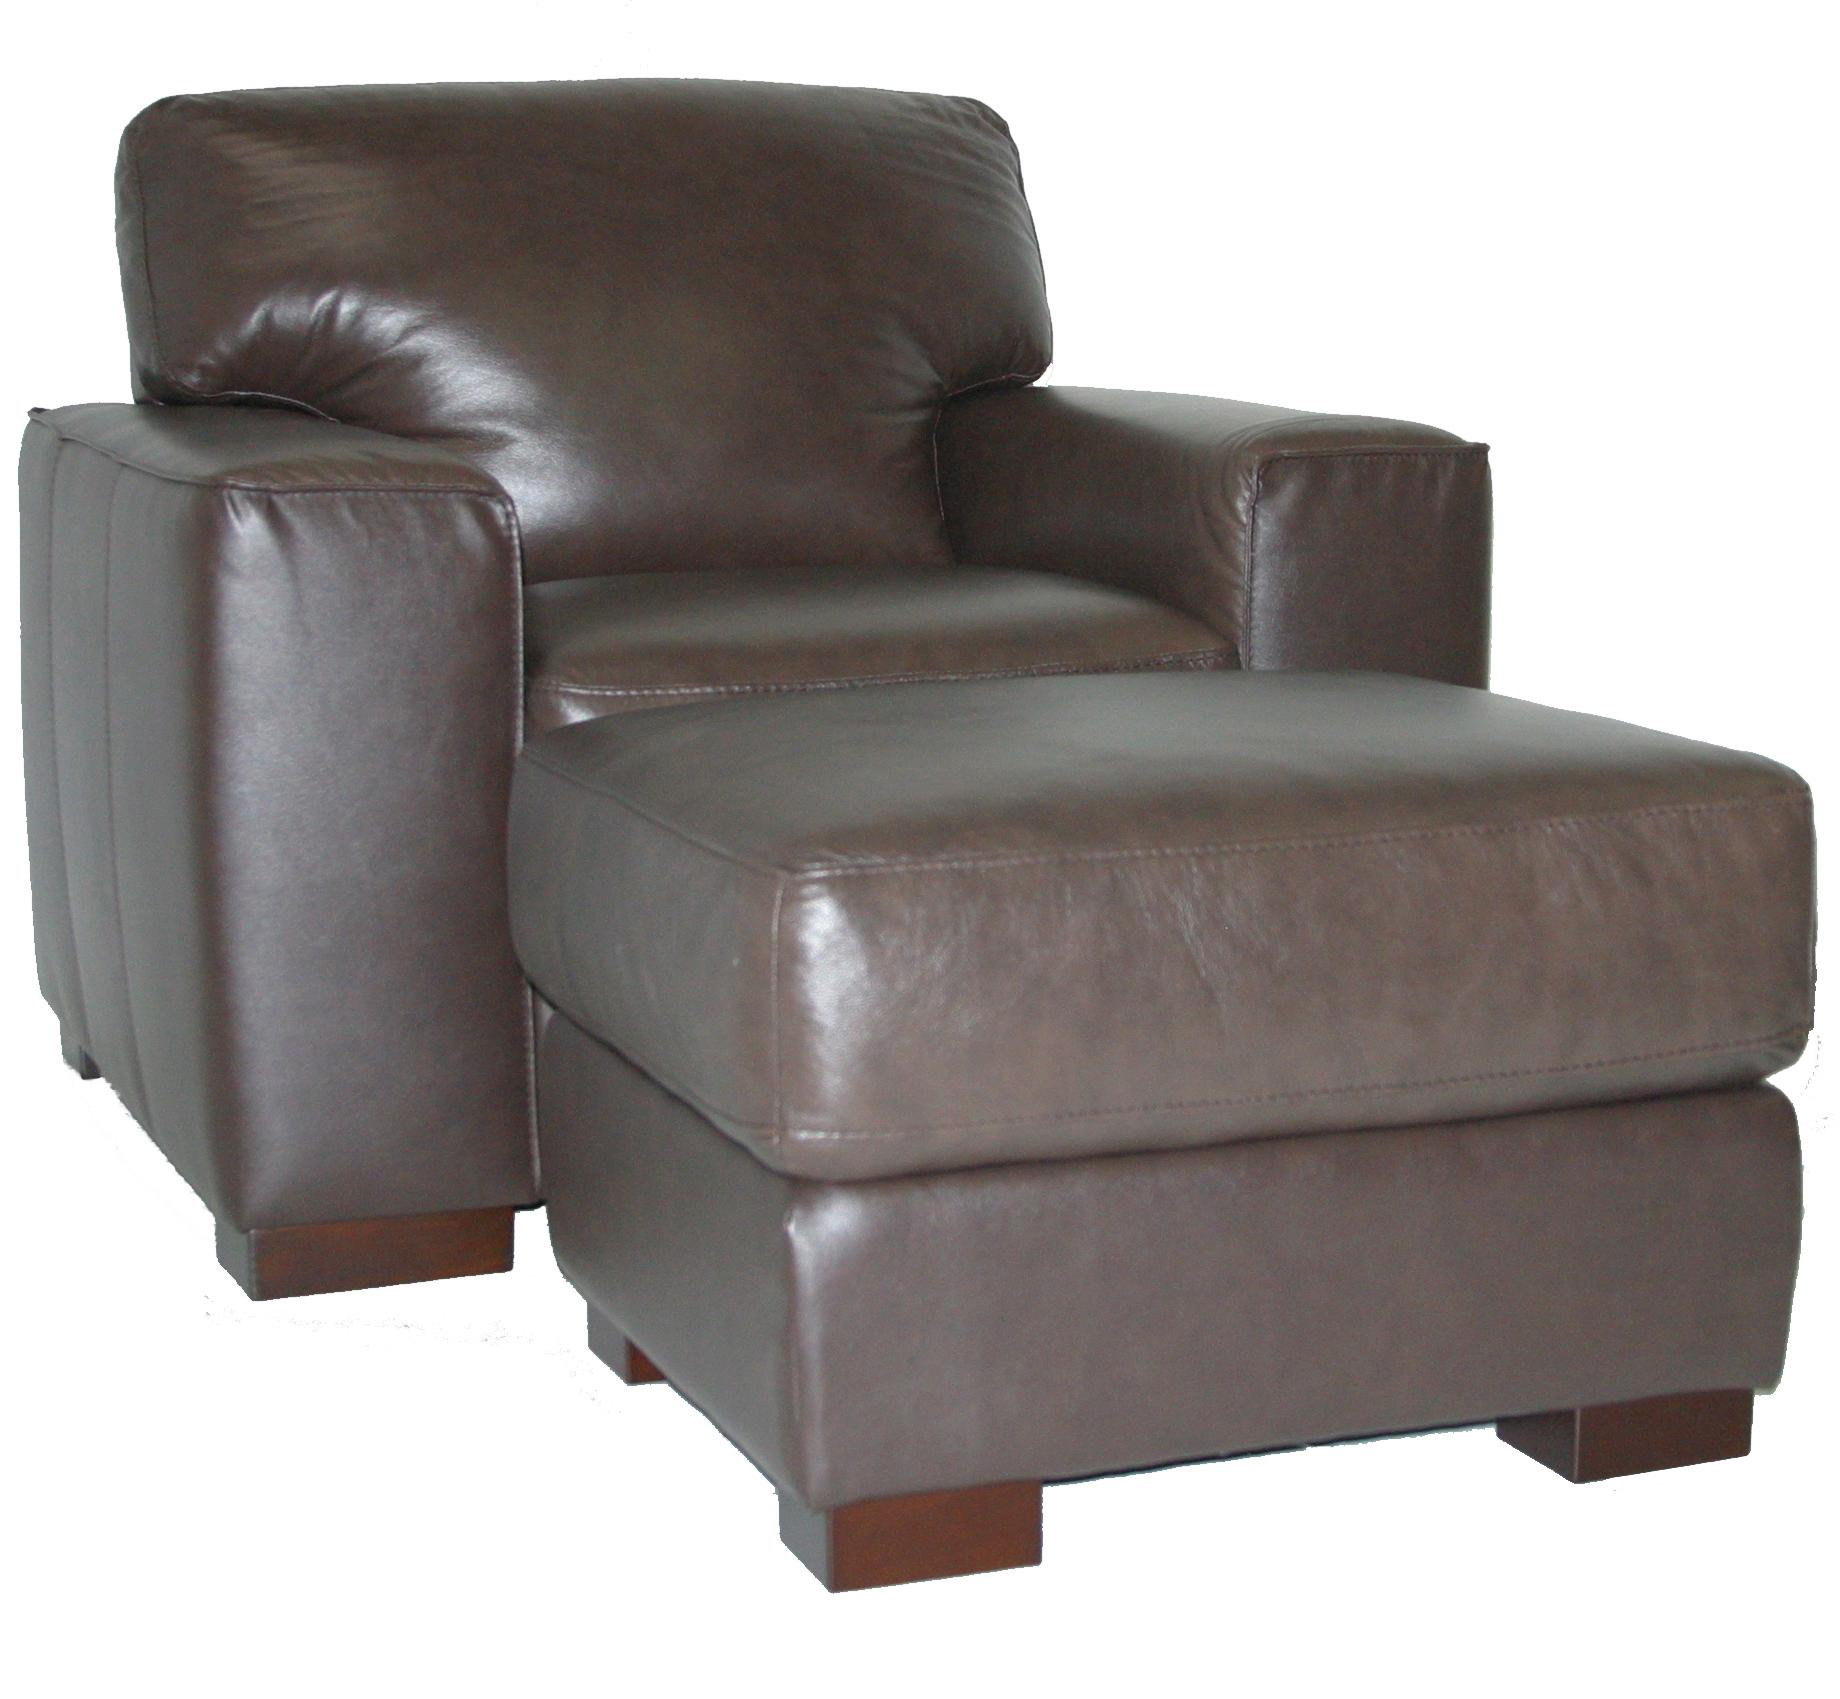 Upholstered Chair and Ottoman Set by Violino at Becker Furniture